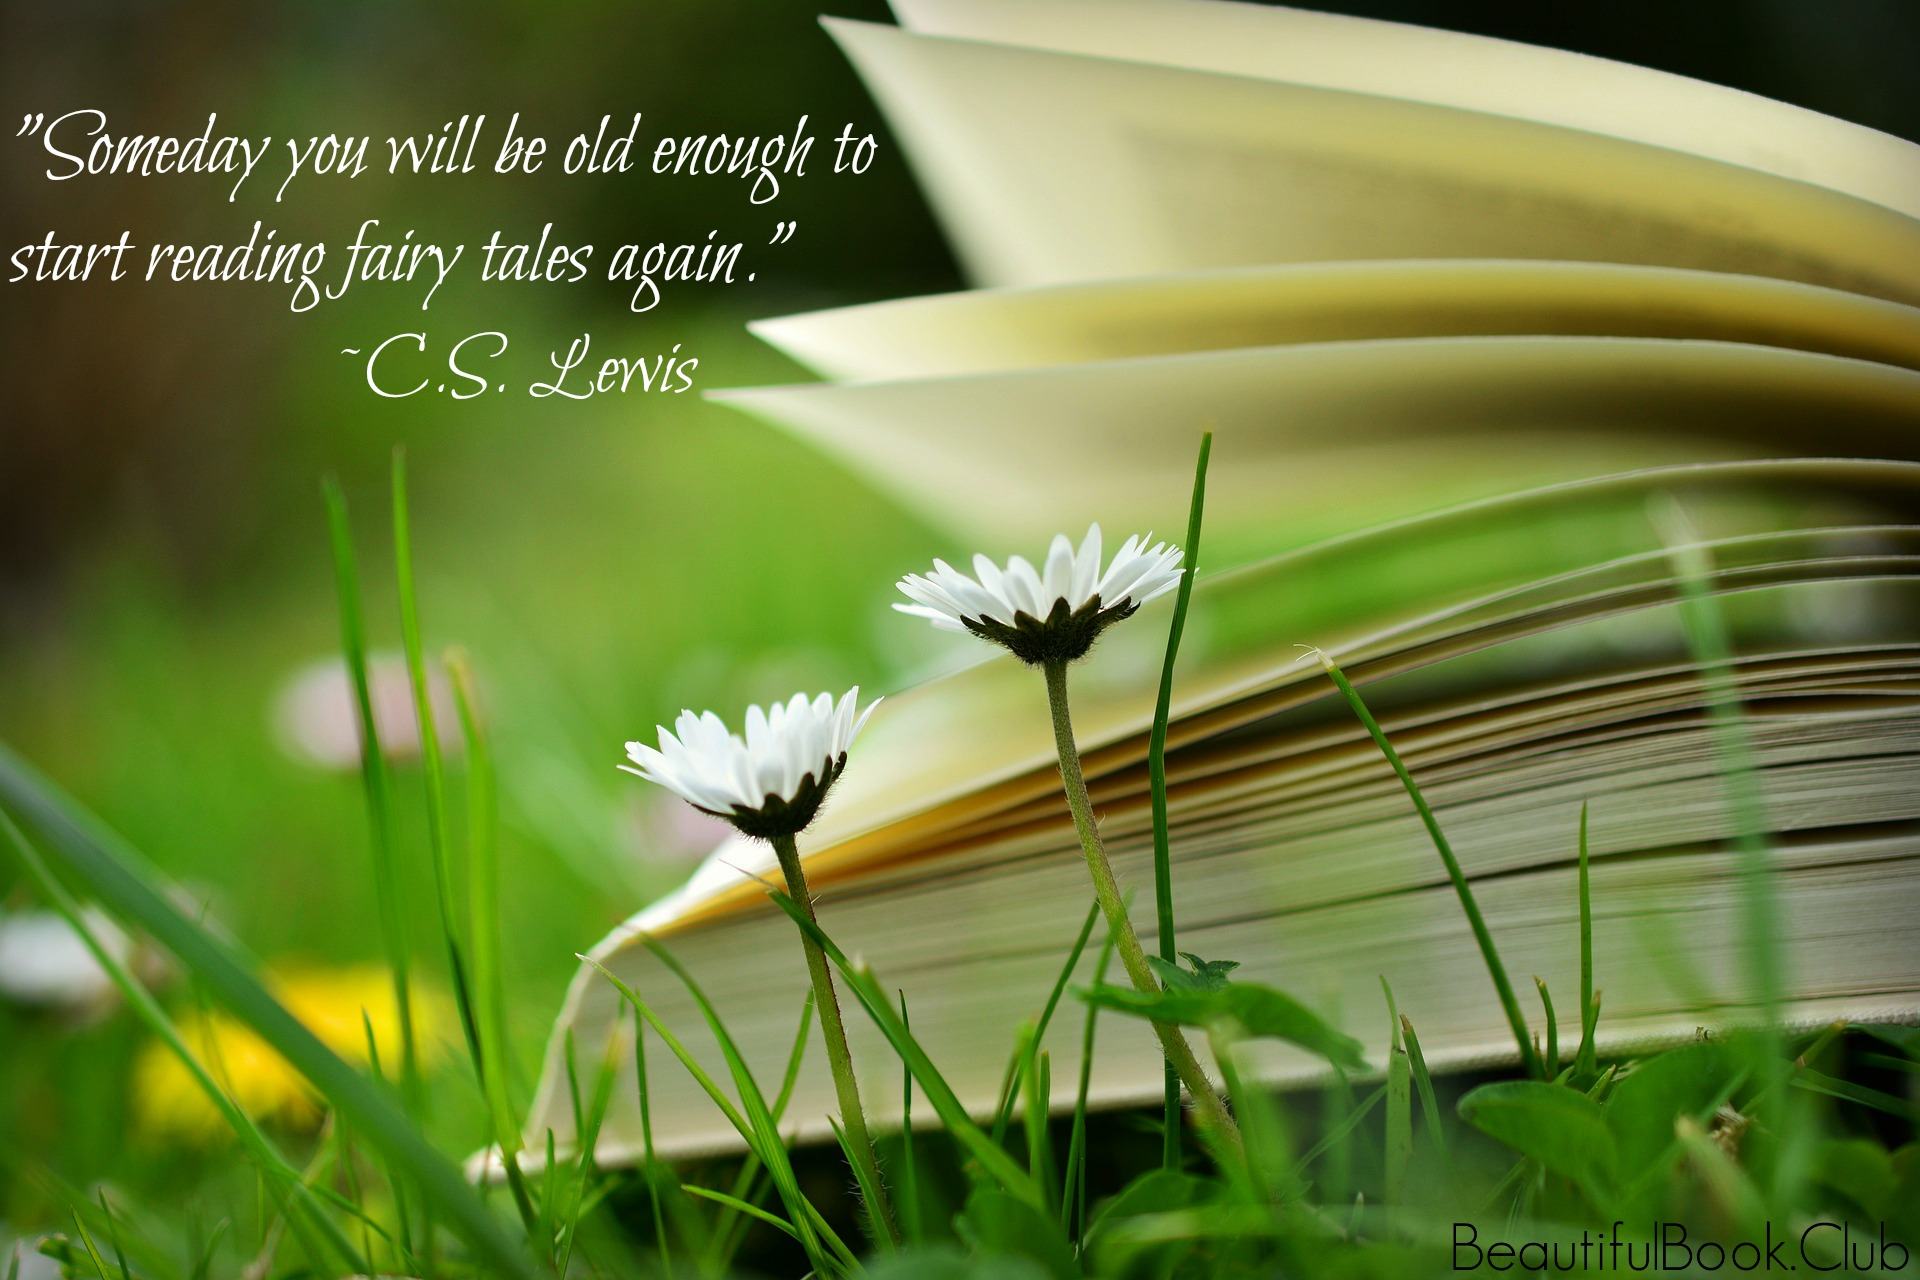 Someday you will be old enough to start reading fairy tales again. -C.S. Lewis